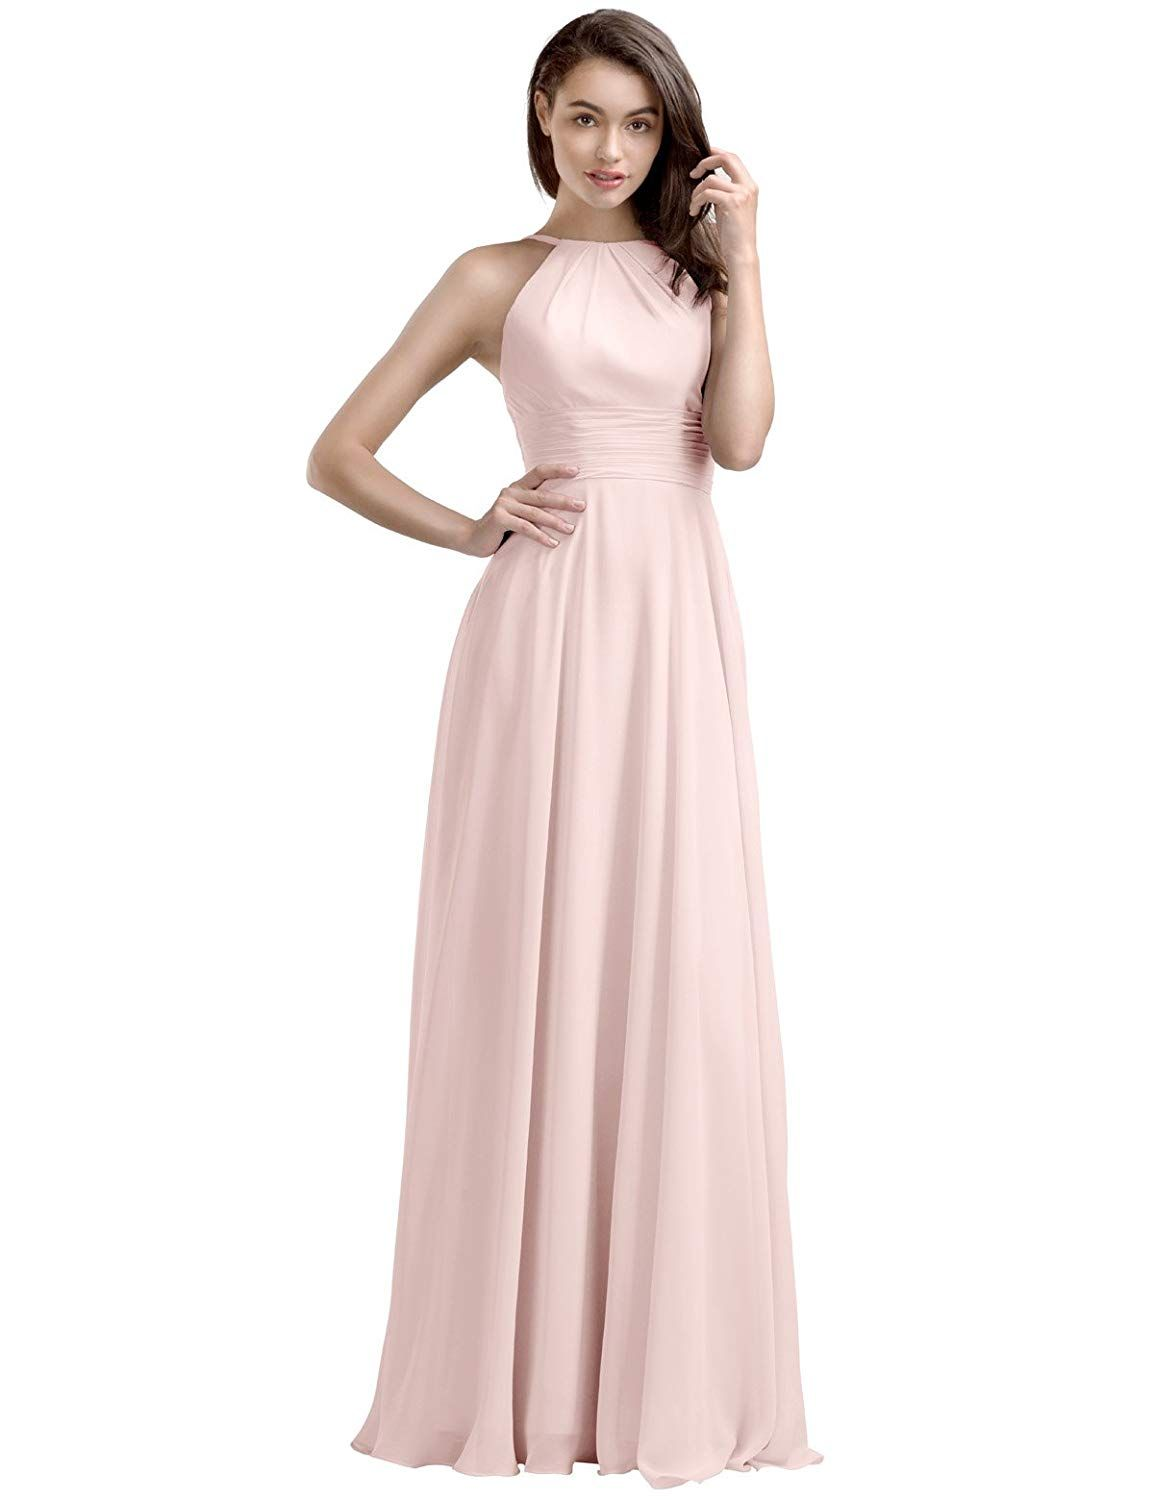 79a4865c1d0 AW Bridal Women s Long Bridesmaid Dresses Vintage Prom Dresses Jewel Neck Evening  Dresses Chiffon at Amazon